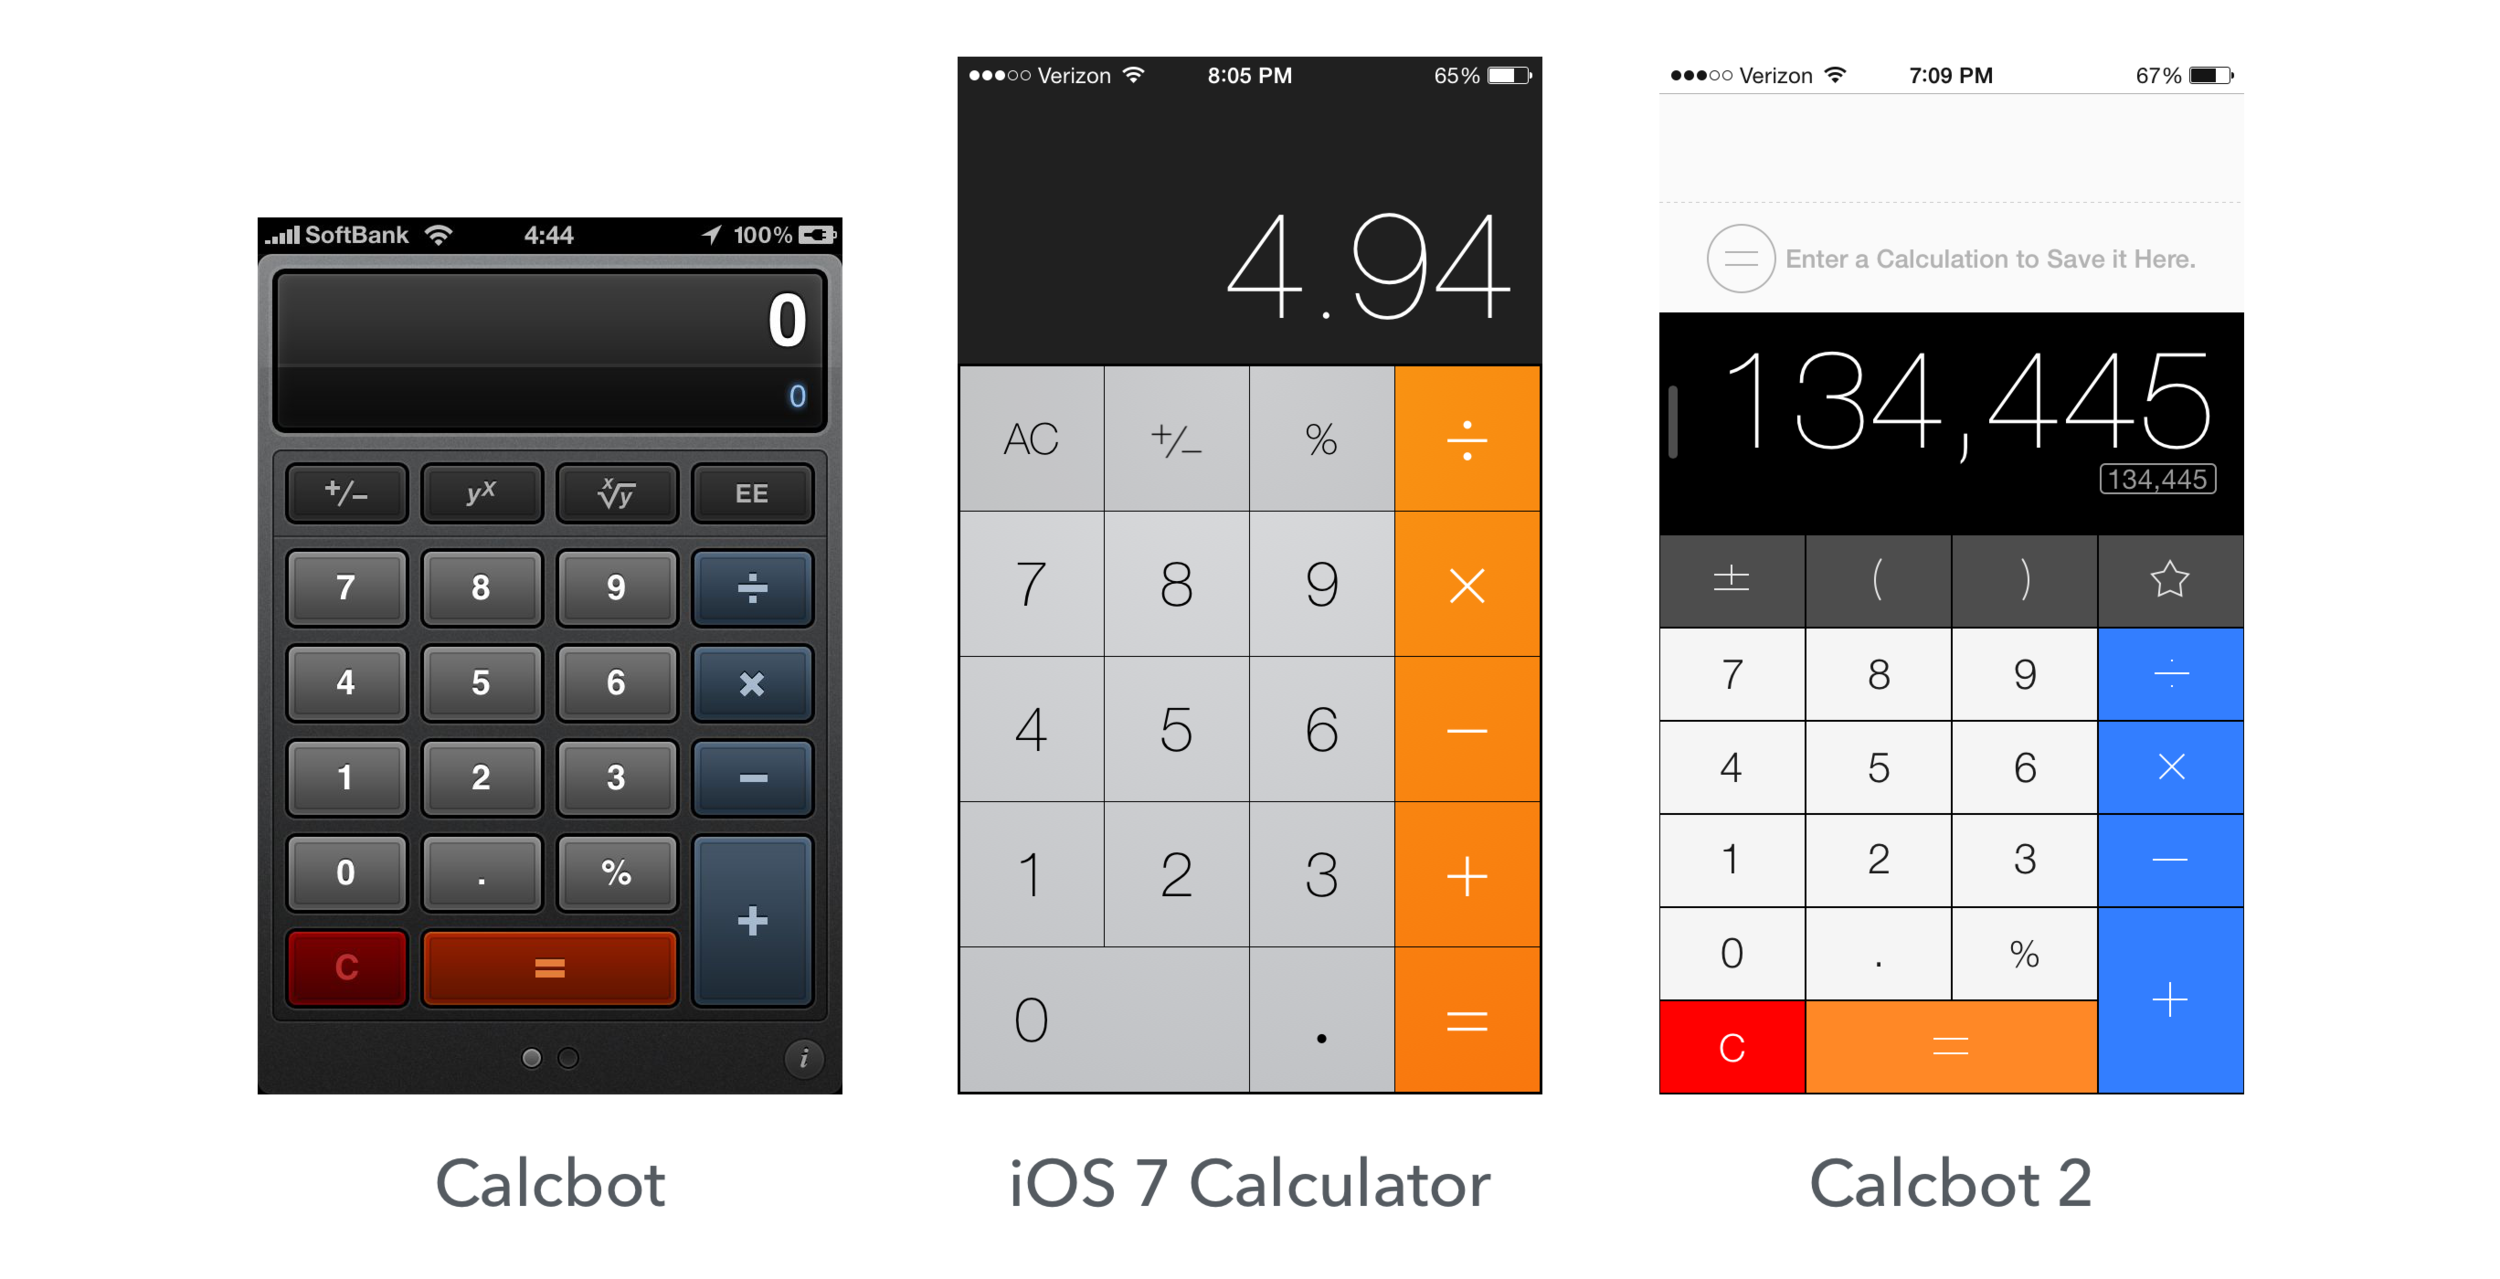 Calcbot for iOS used to have a distinctive flavor that set it apart from the competition. Today it looks eerily similar to the default calculator app.